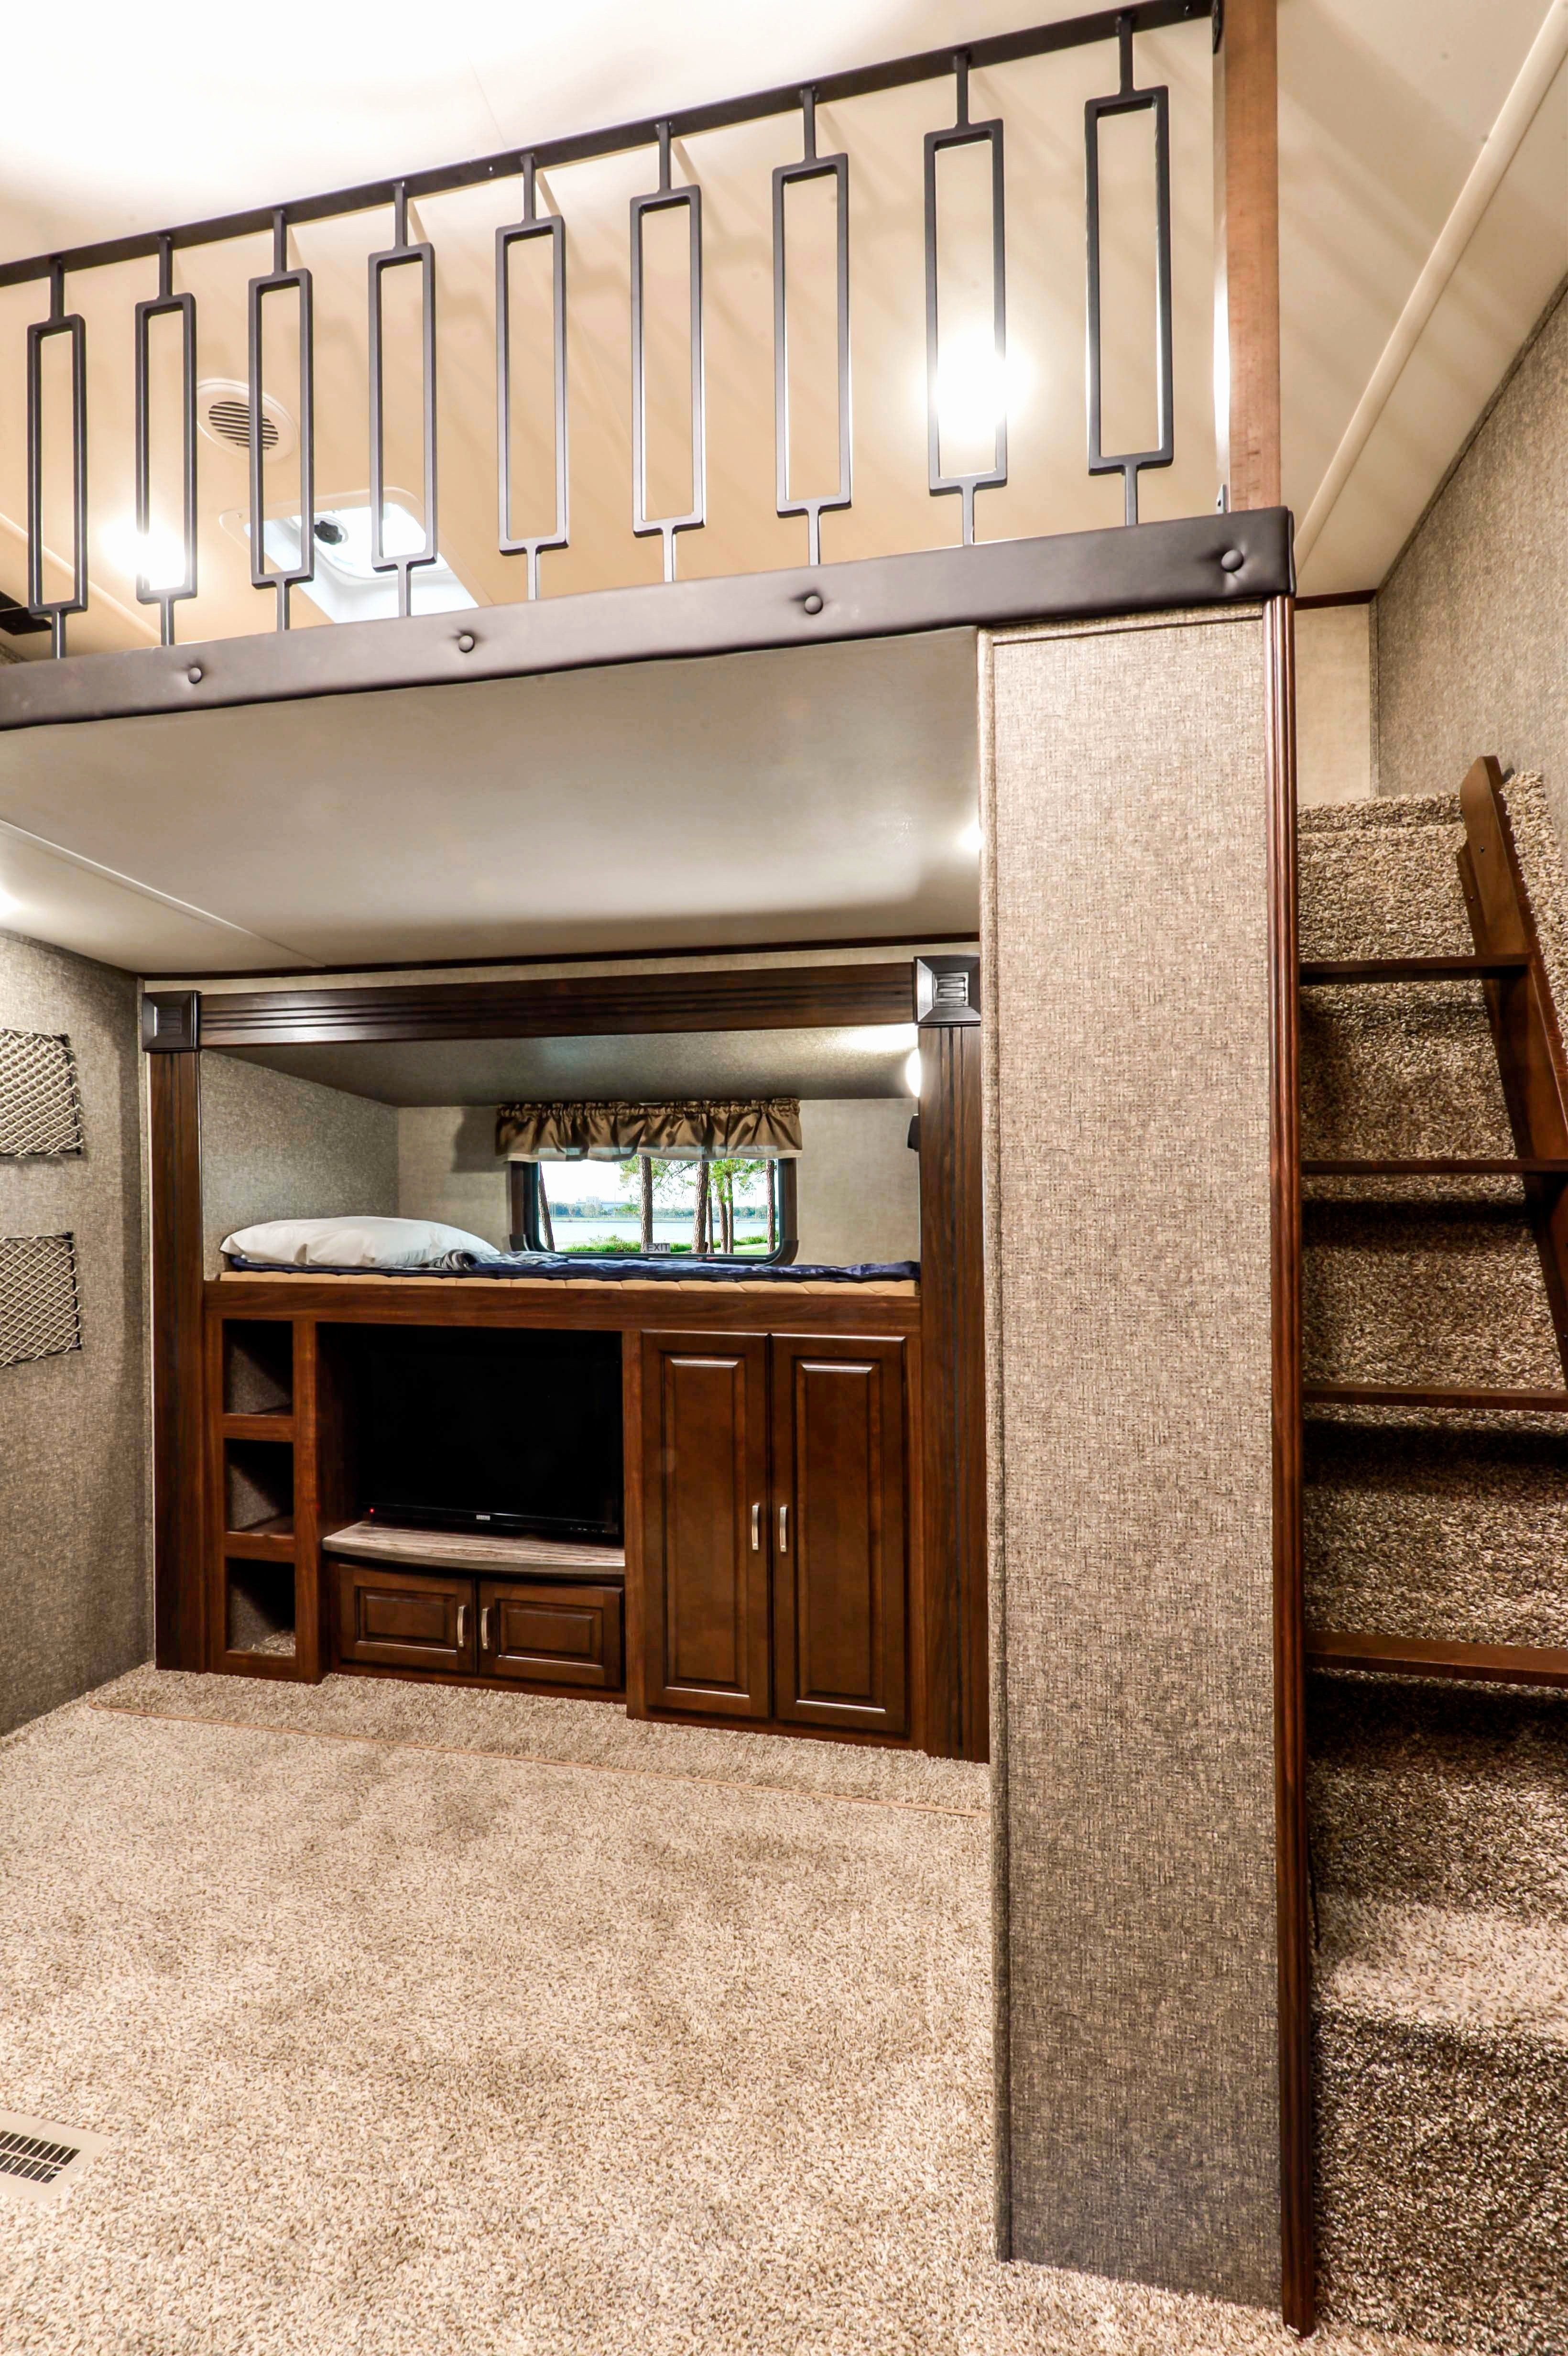 Pin by aliciamdixon on Camping Bunk house, Rv living